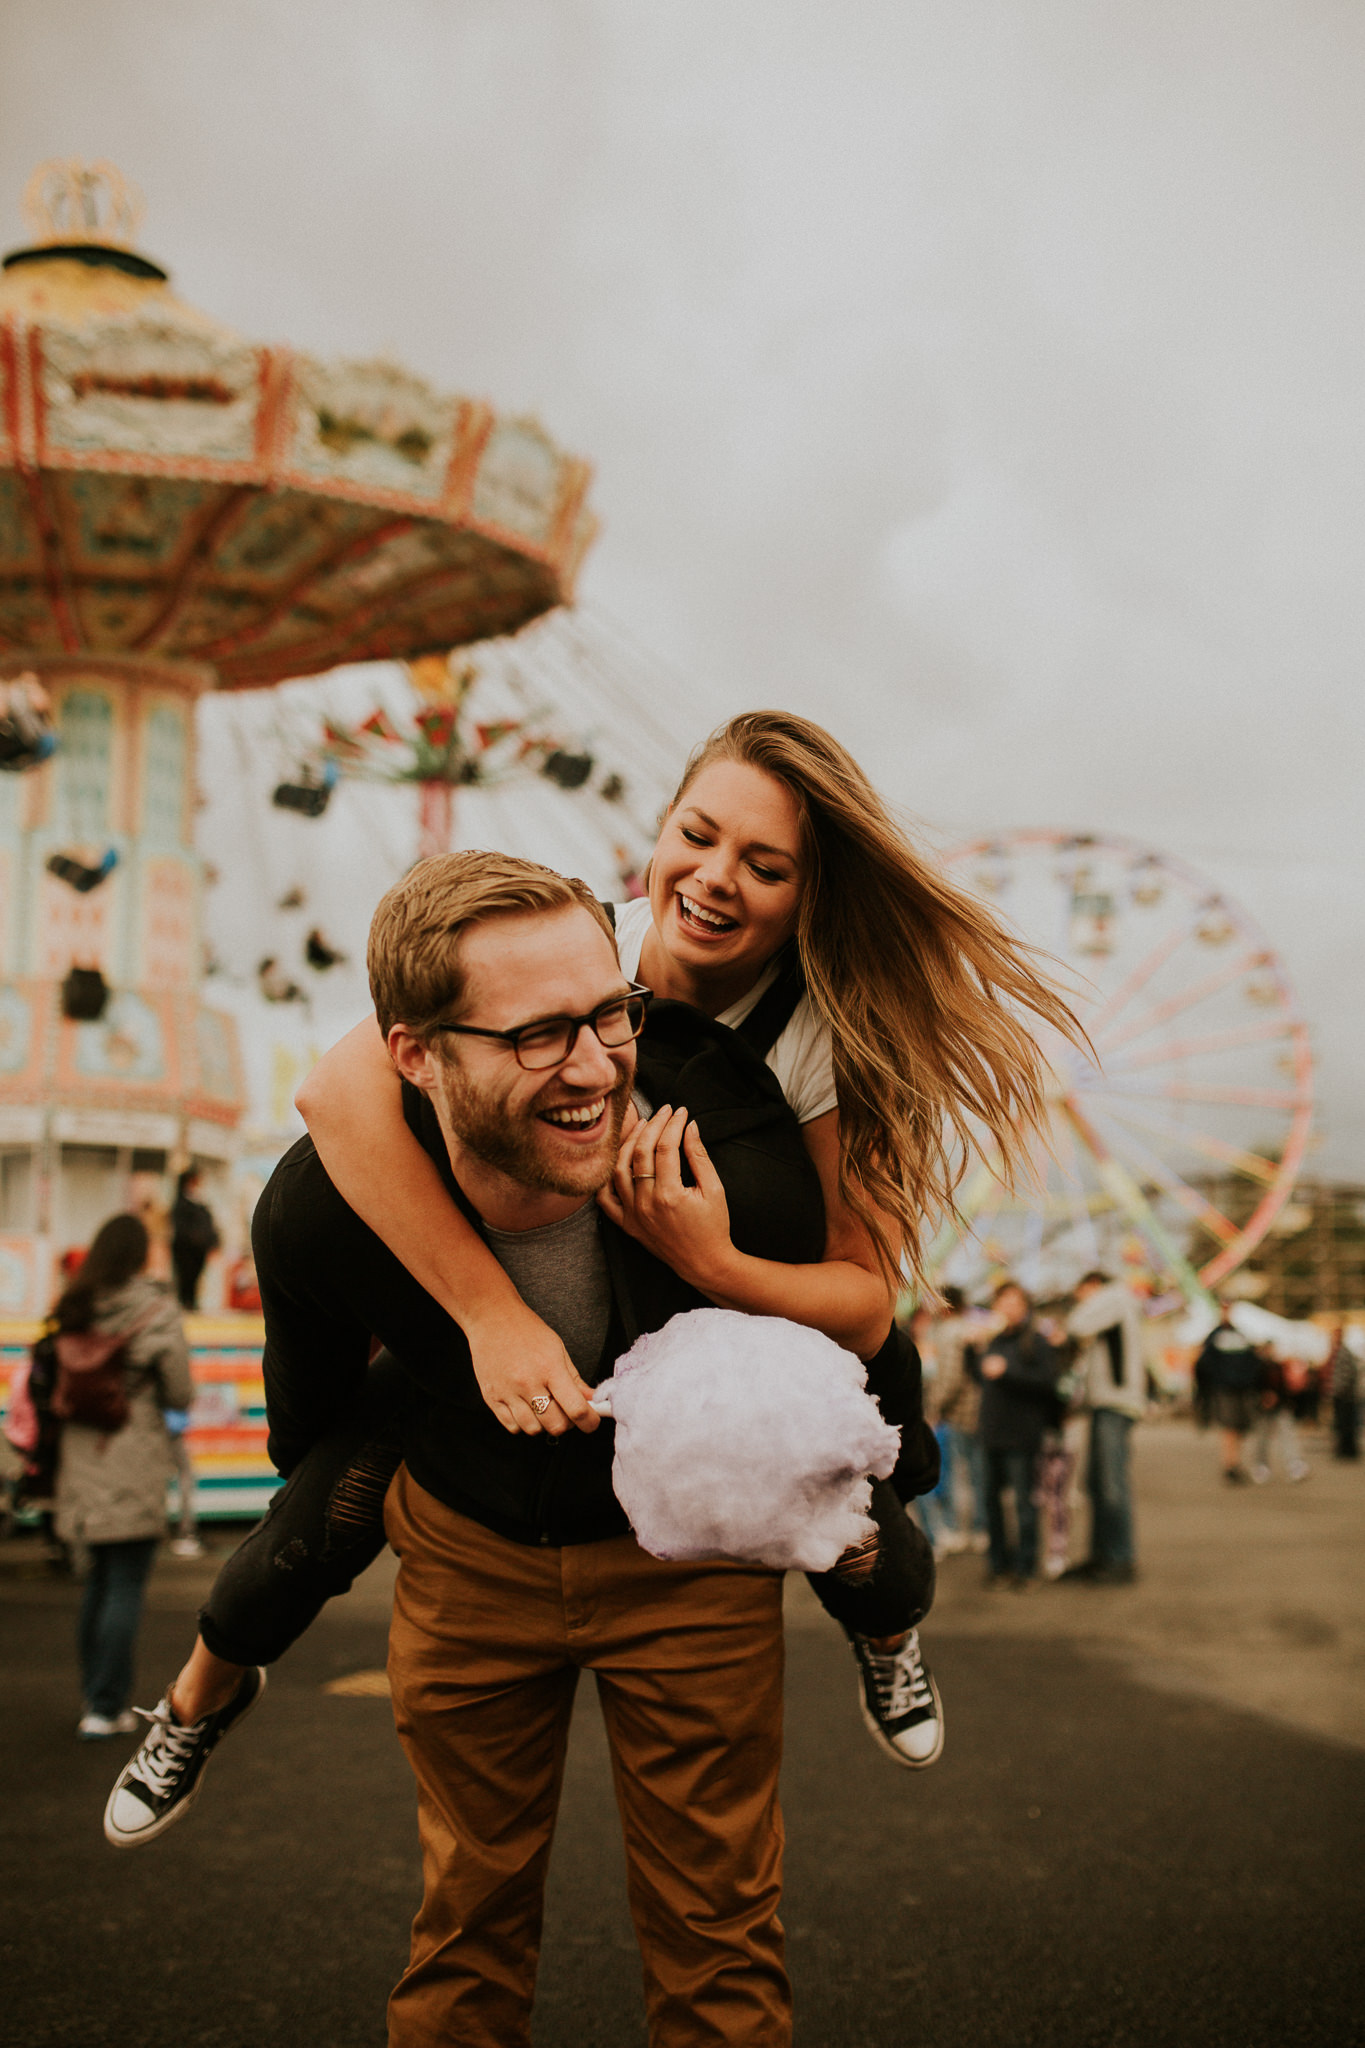 Summer vibe couple having fun at Puyallup fair engagement session for engagement photos.